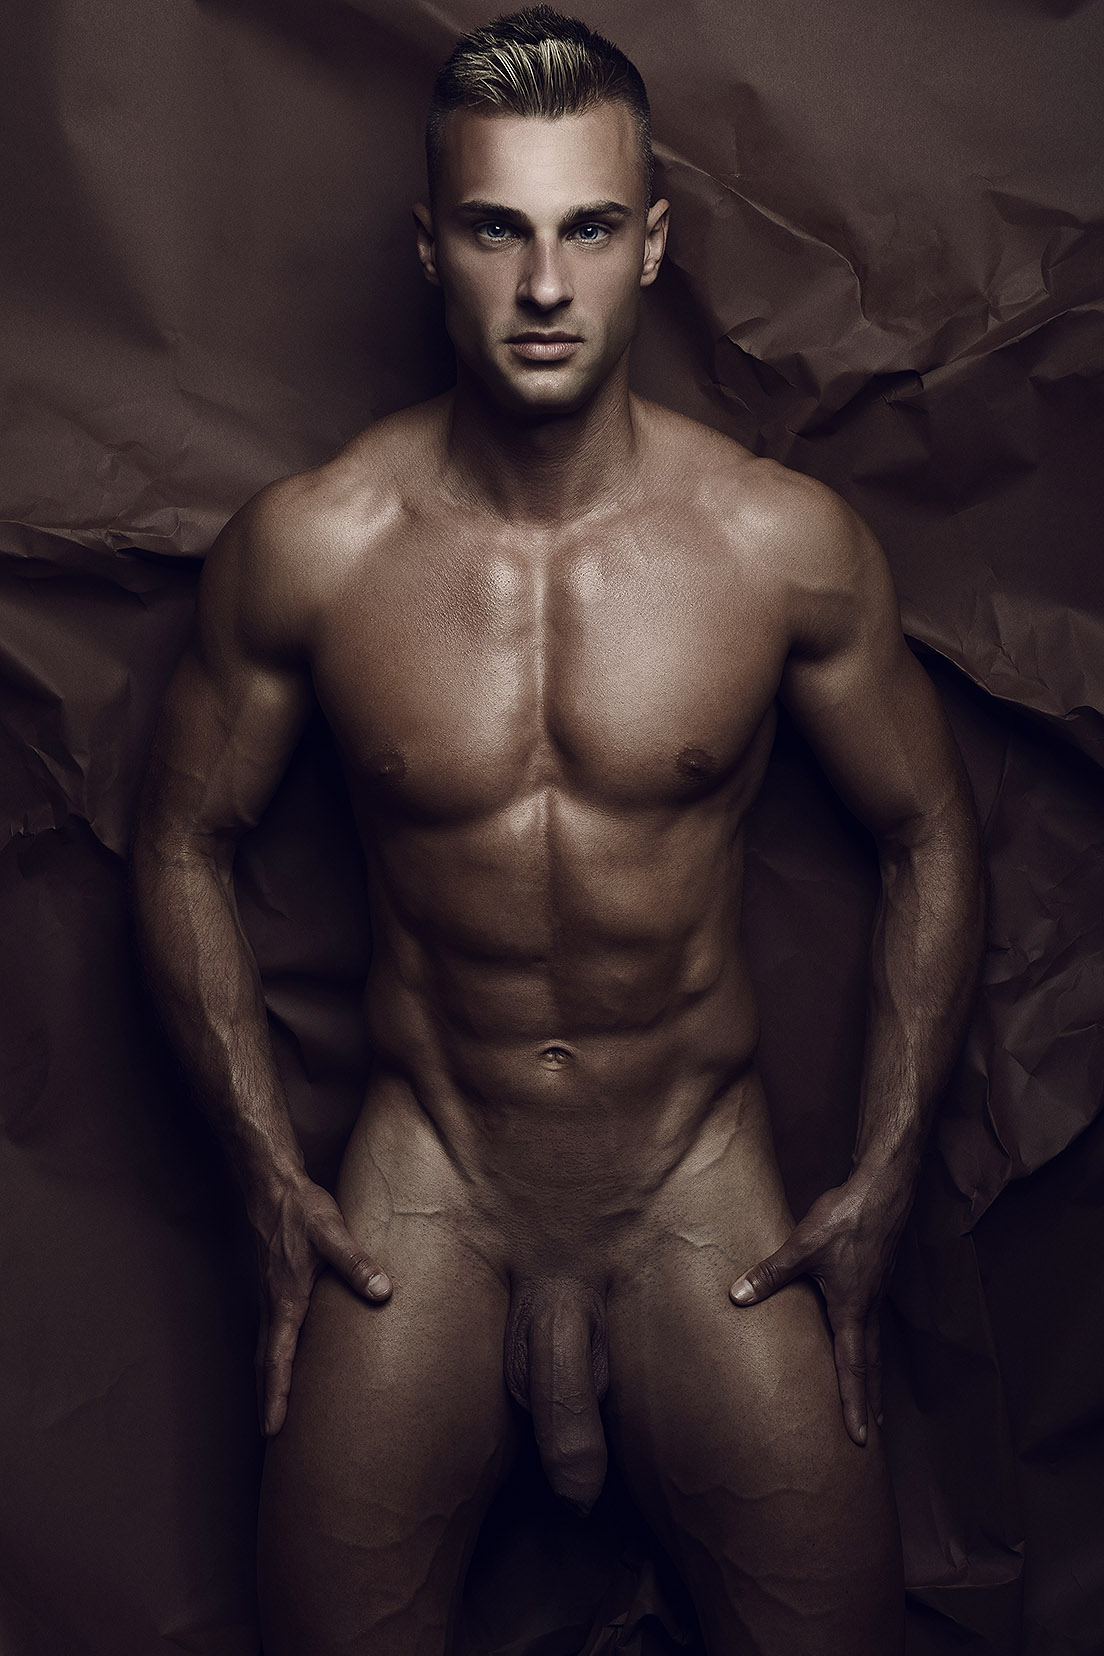 Remarkable, rather Naked free male models